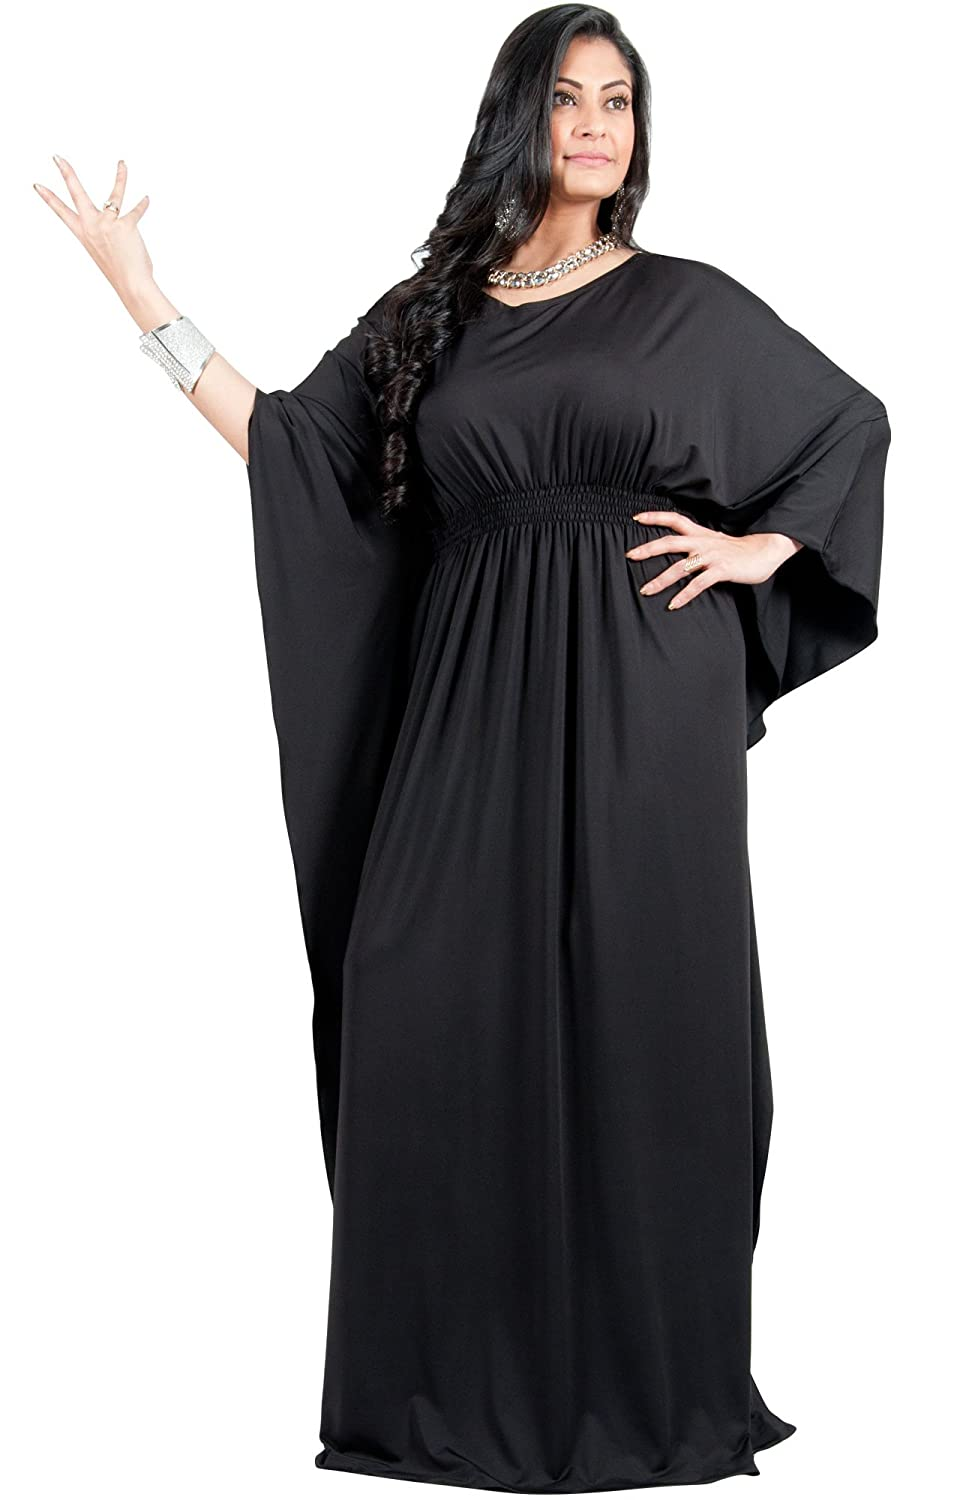 ea47fbfc9 FABRIC TYPE - Milk Silk Jersey (5% Spandex) GARMENT CARE - Hand or machine  washable. Can be dry-cleaned if desired. PLUS SIZE - This great plus size  maxi ...